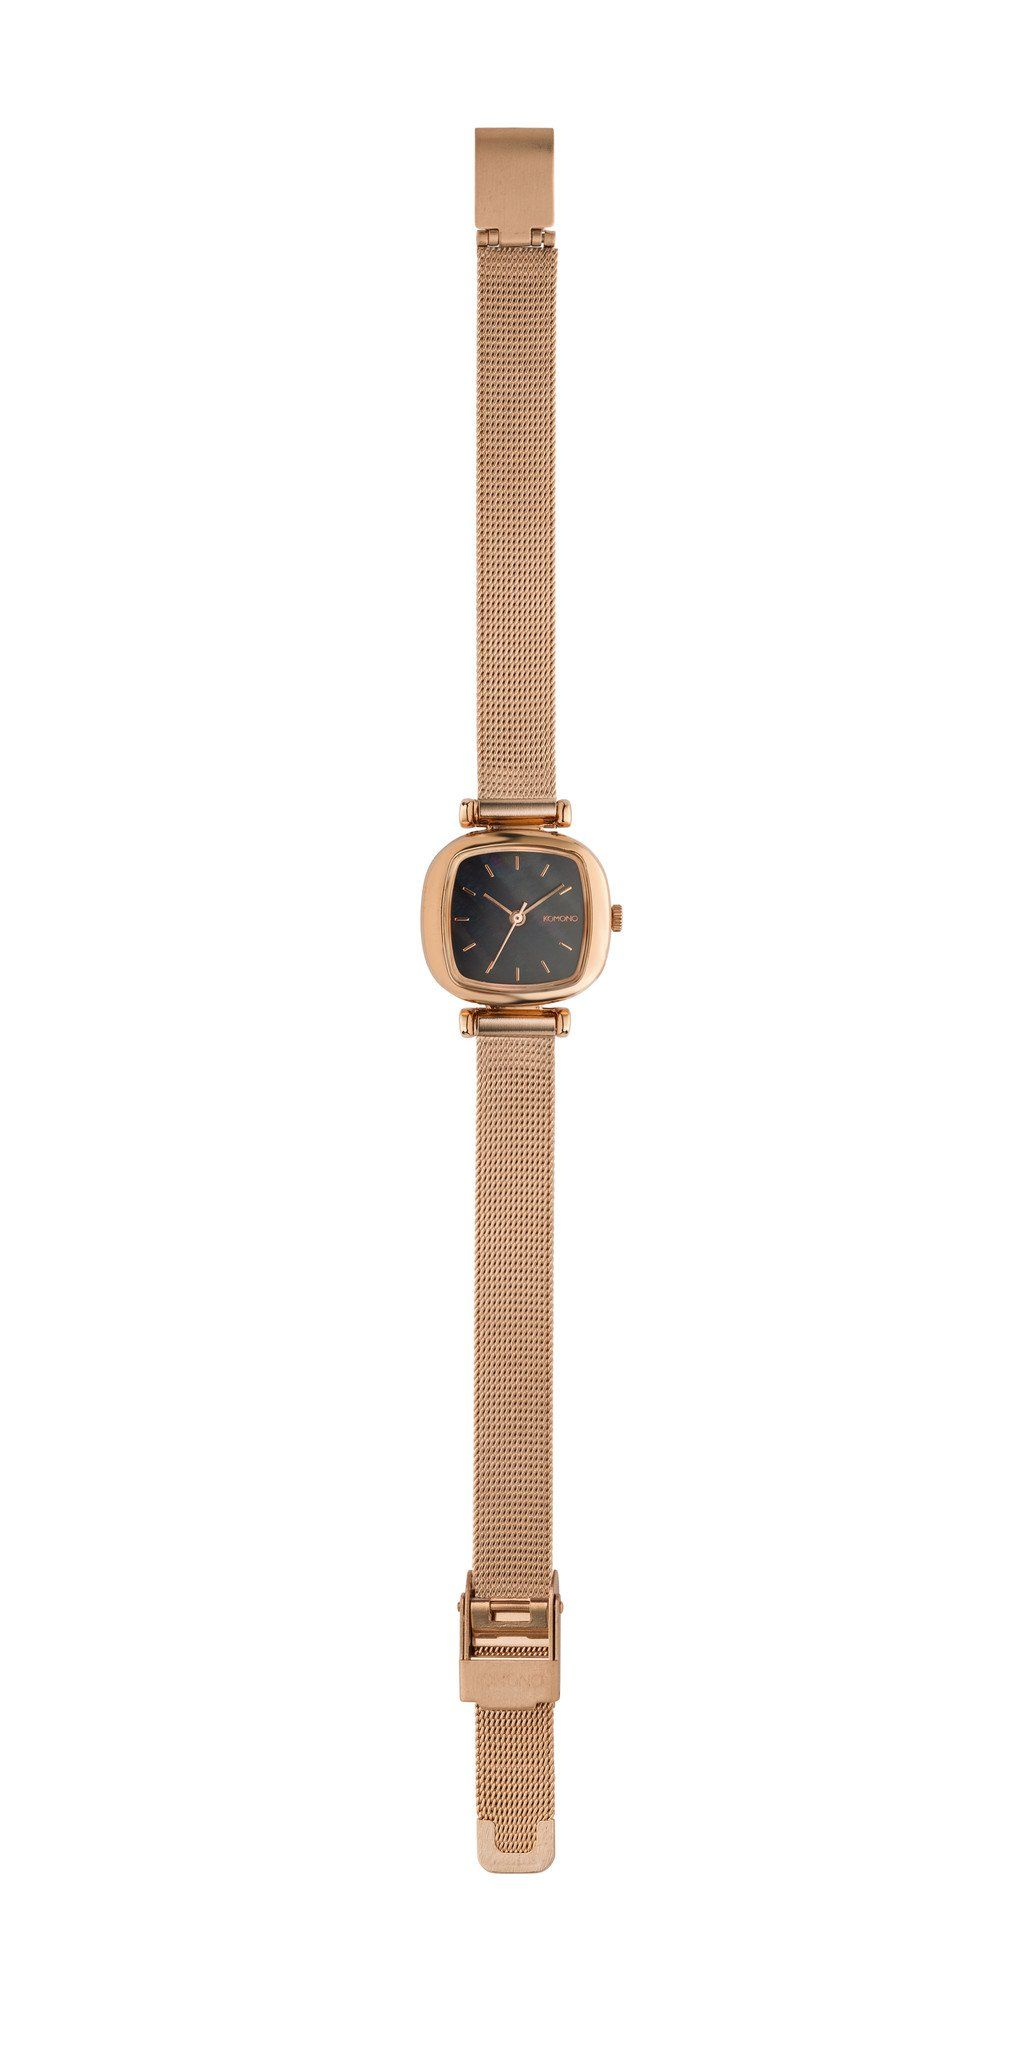 The Moneypenny is a small, feminine and elegant watch for women. The Moneypenny Royale is a crown jewel in the Komono watch collection.